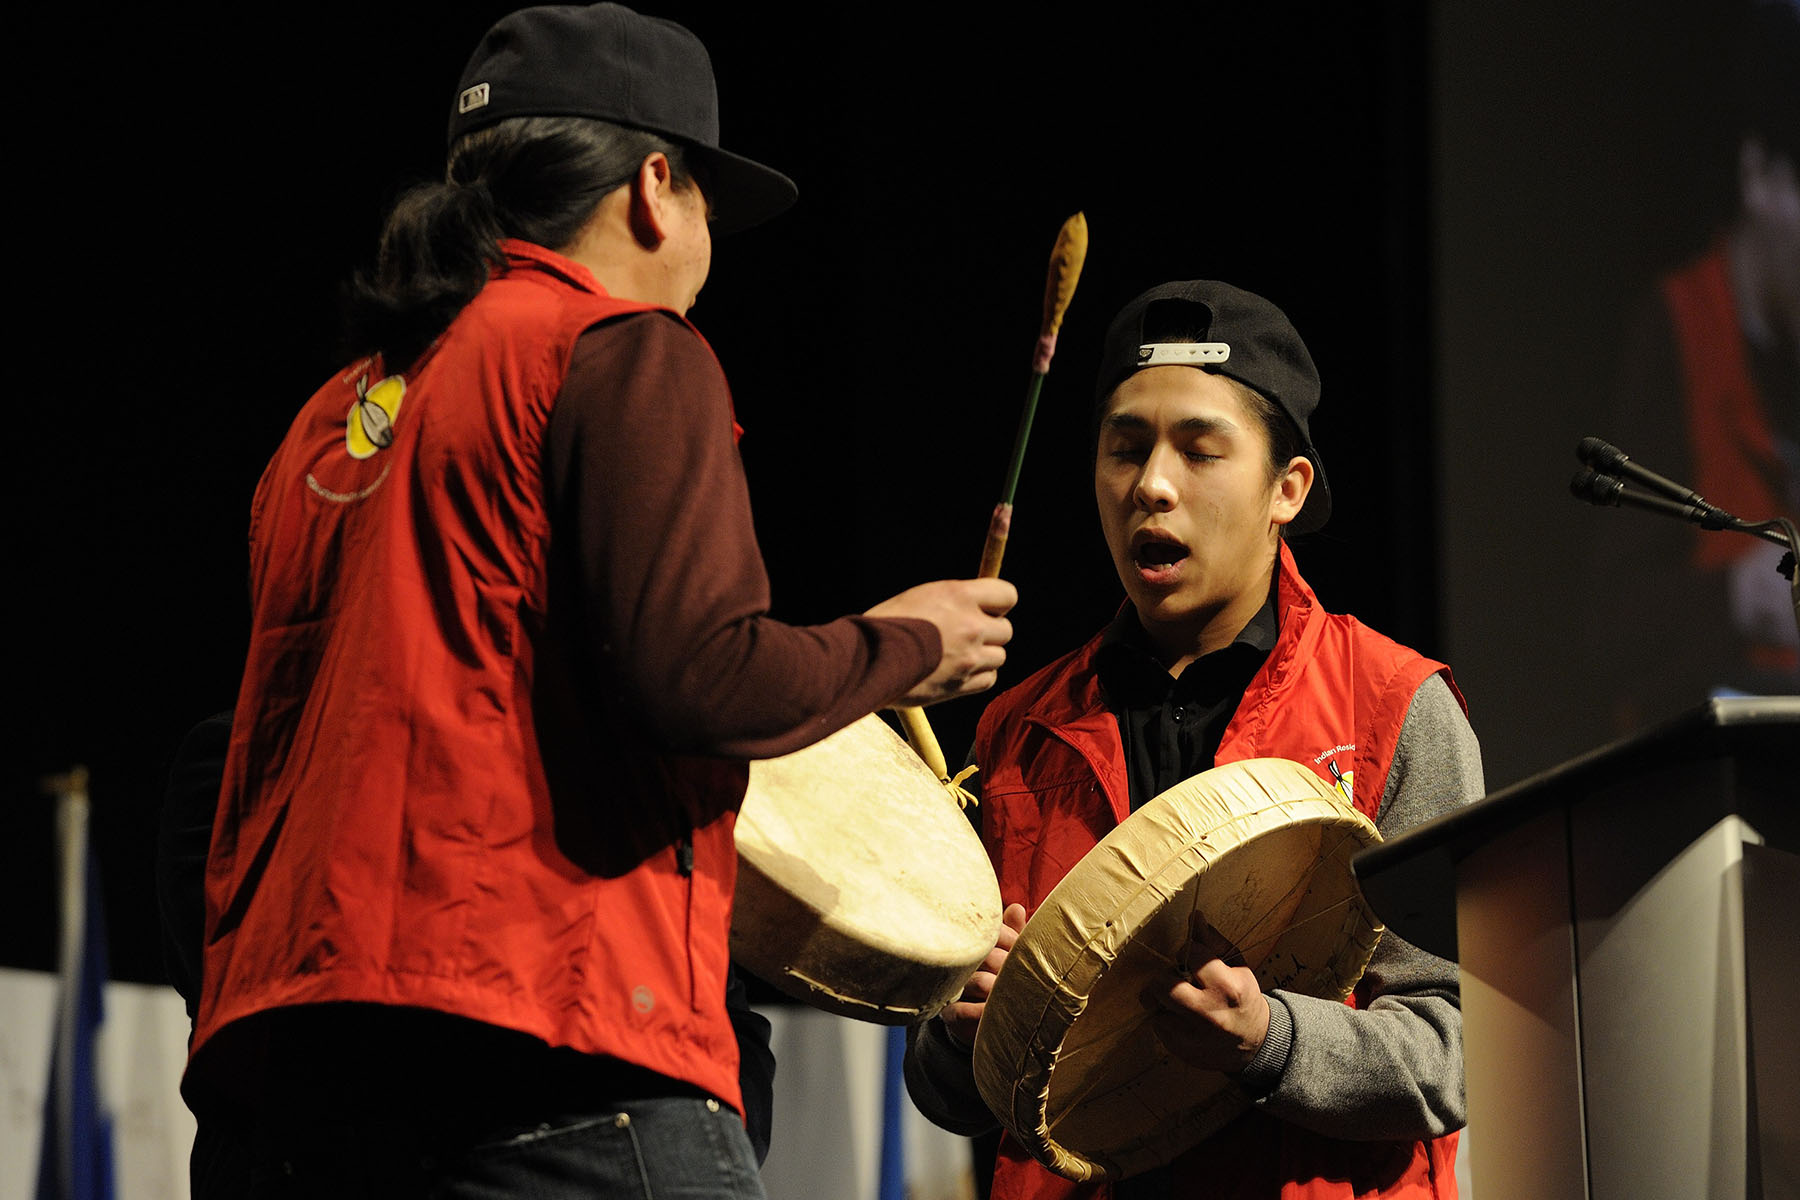 A healing song was performed by Aboriginal youth.